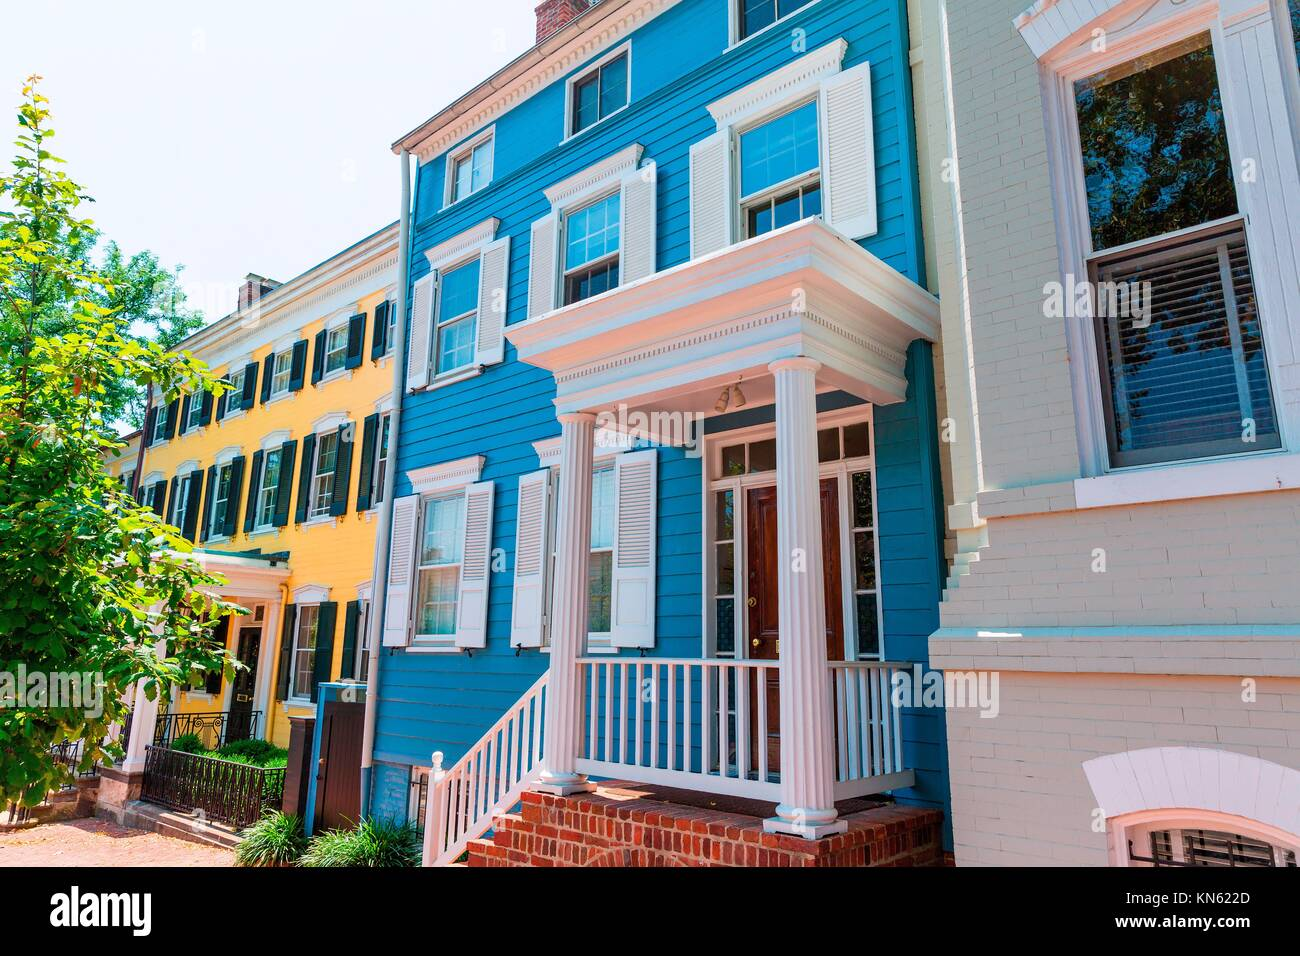 Georgetown historical district townhouses facades Washington DC in USA. - Stock Image